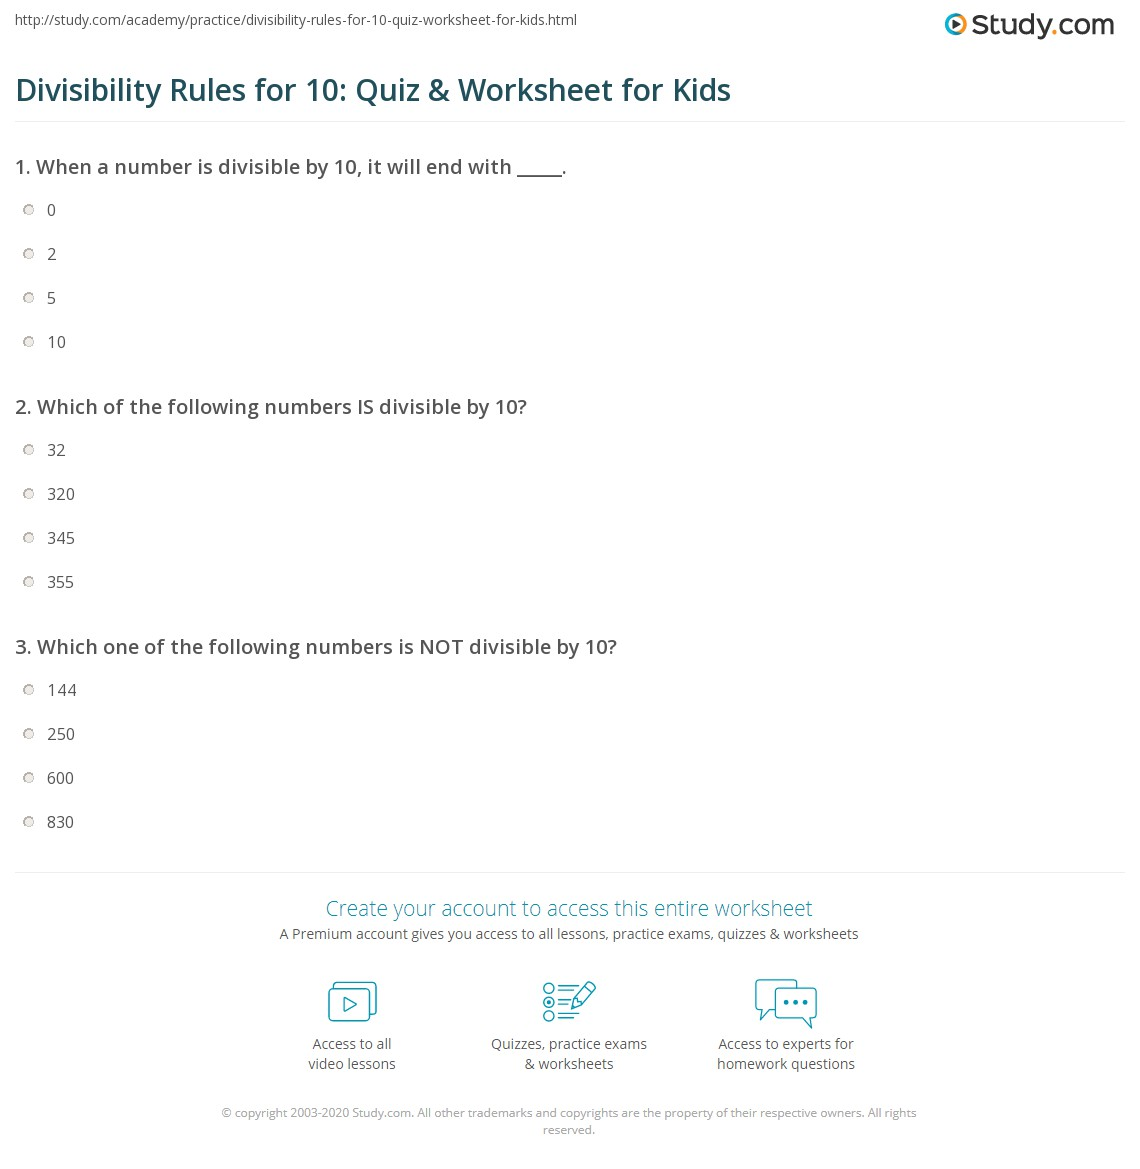 image regarding Divisibility Rules Printable referred to as Divisibility Regulations for 10: Quiz Worksheet for Little ones